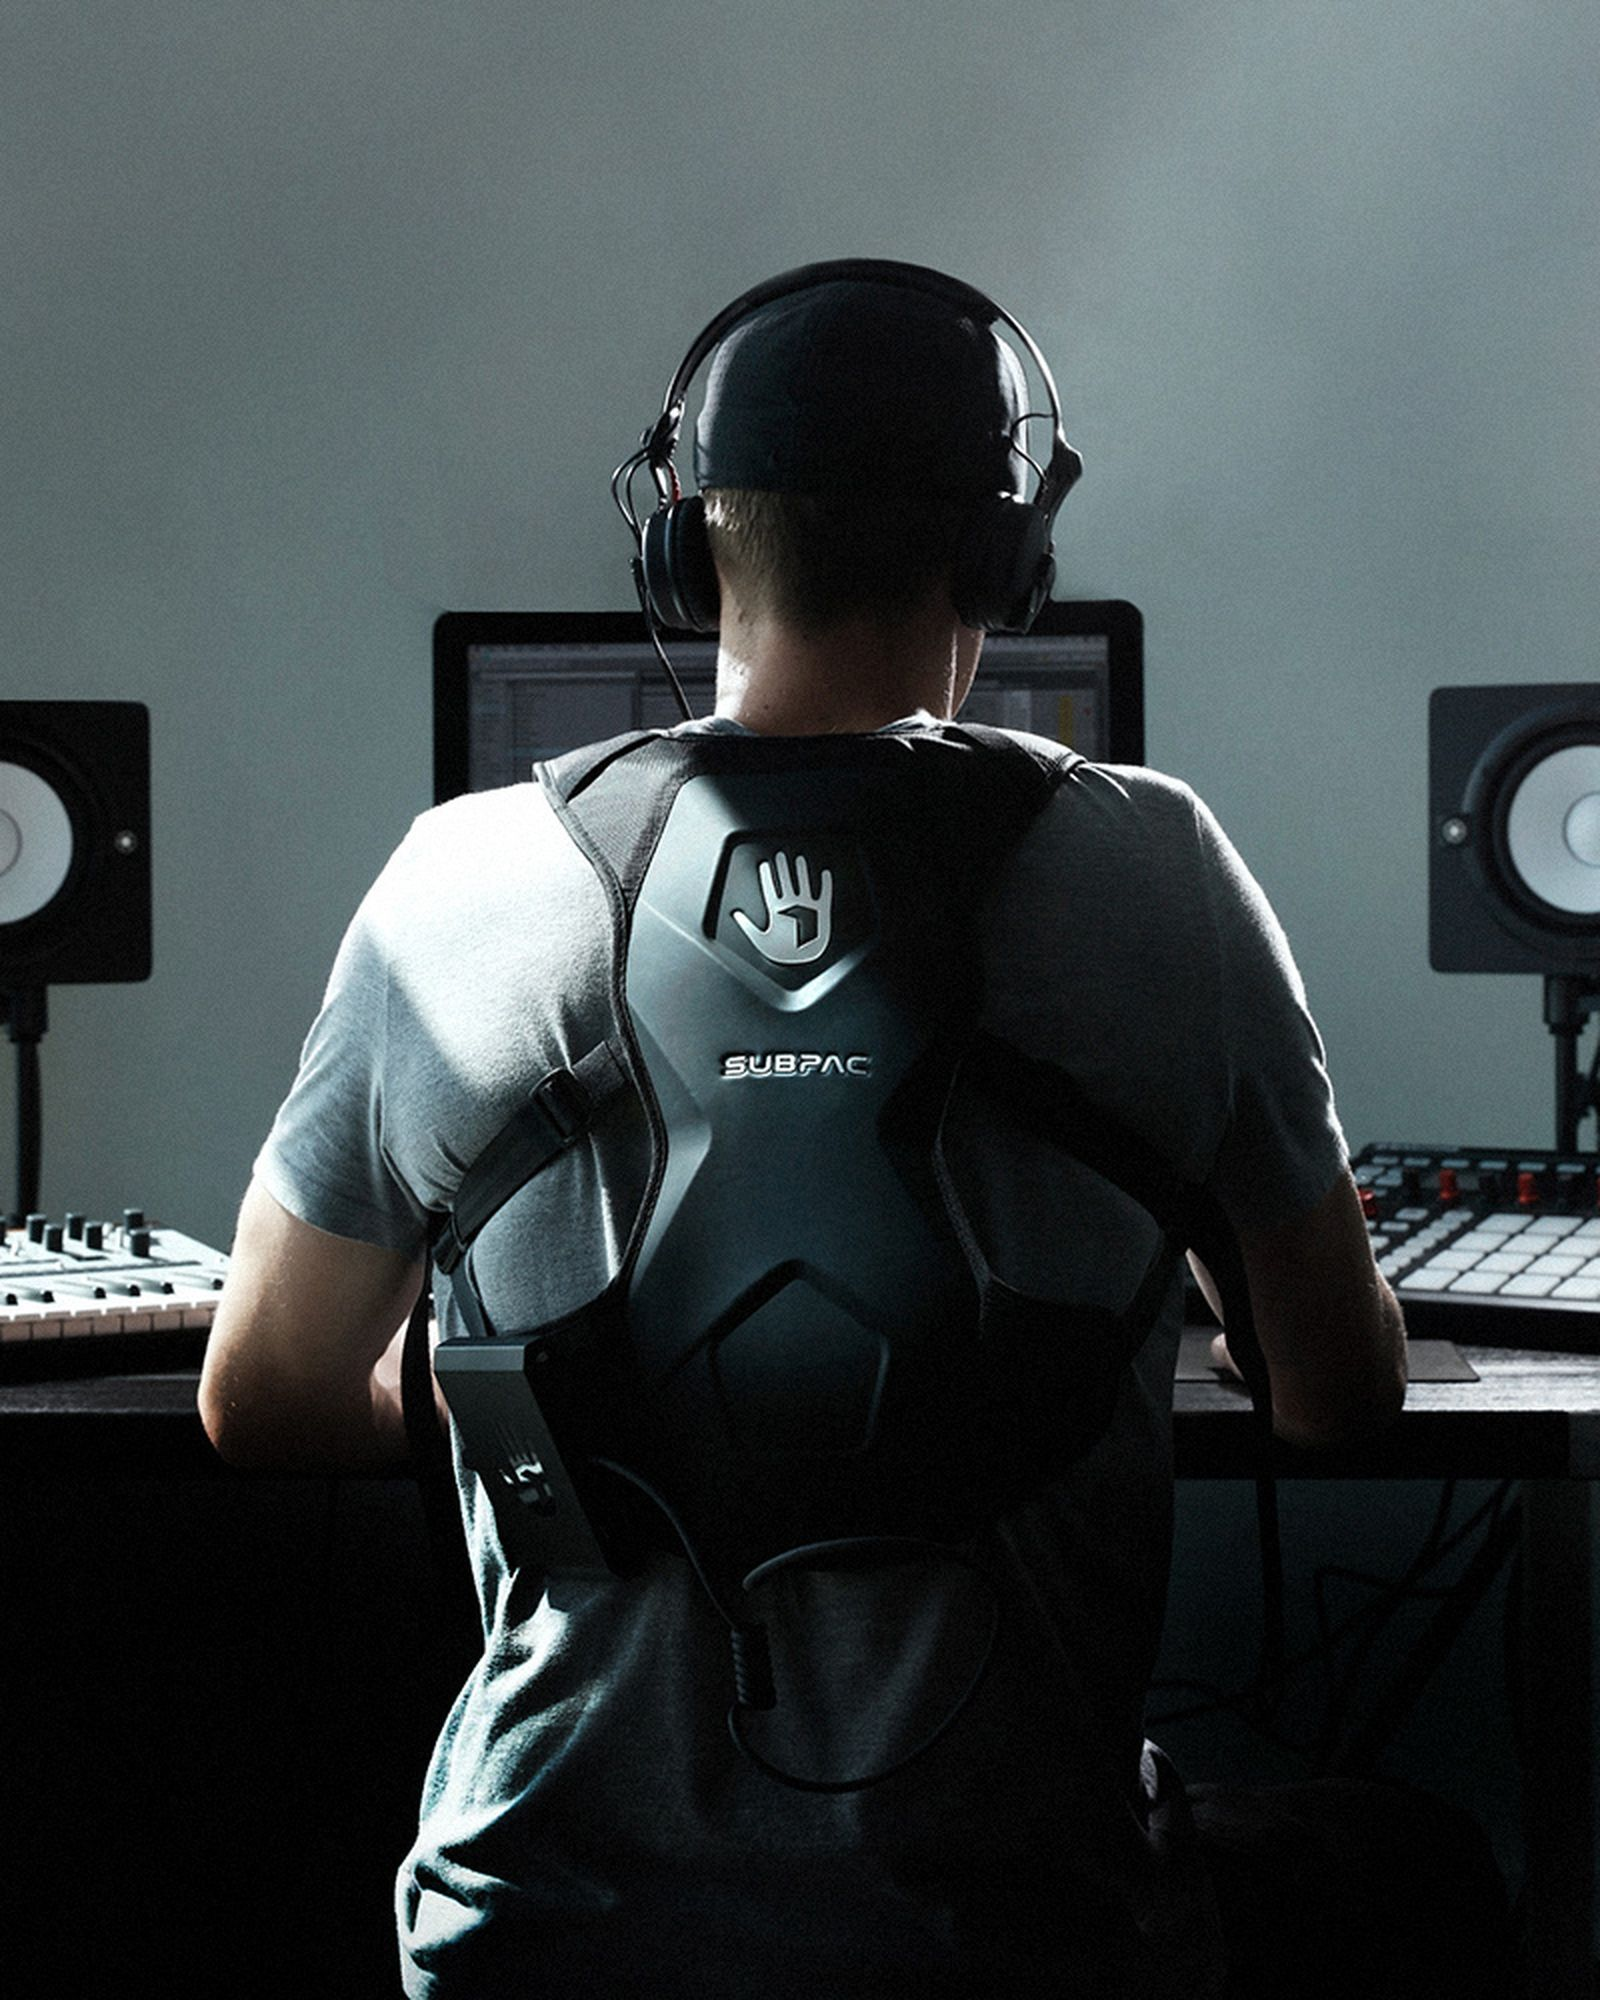 technology finally making life adaptable musicians disabilities SubPac alius attitude is everything